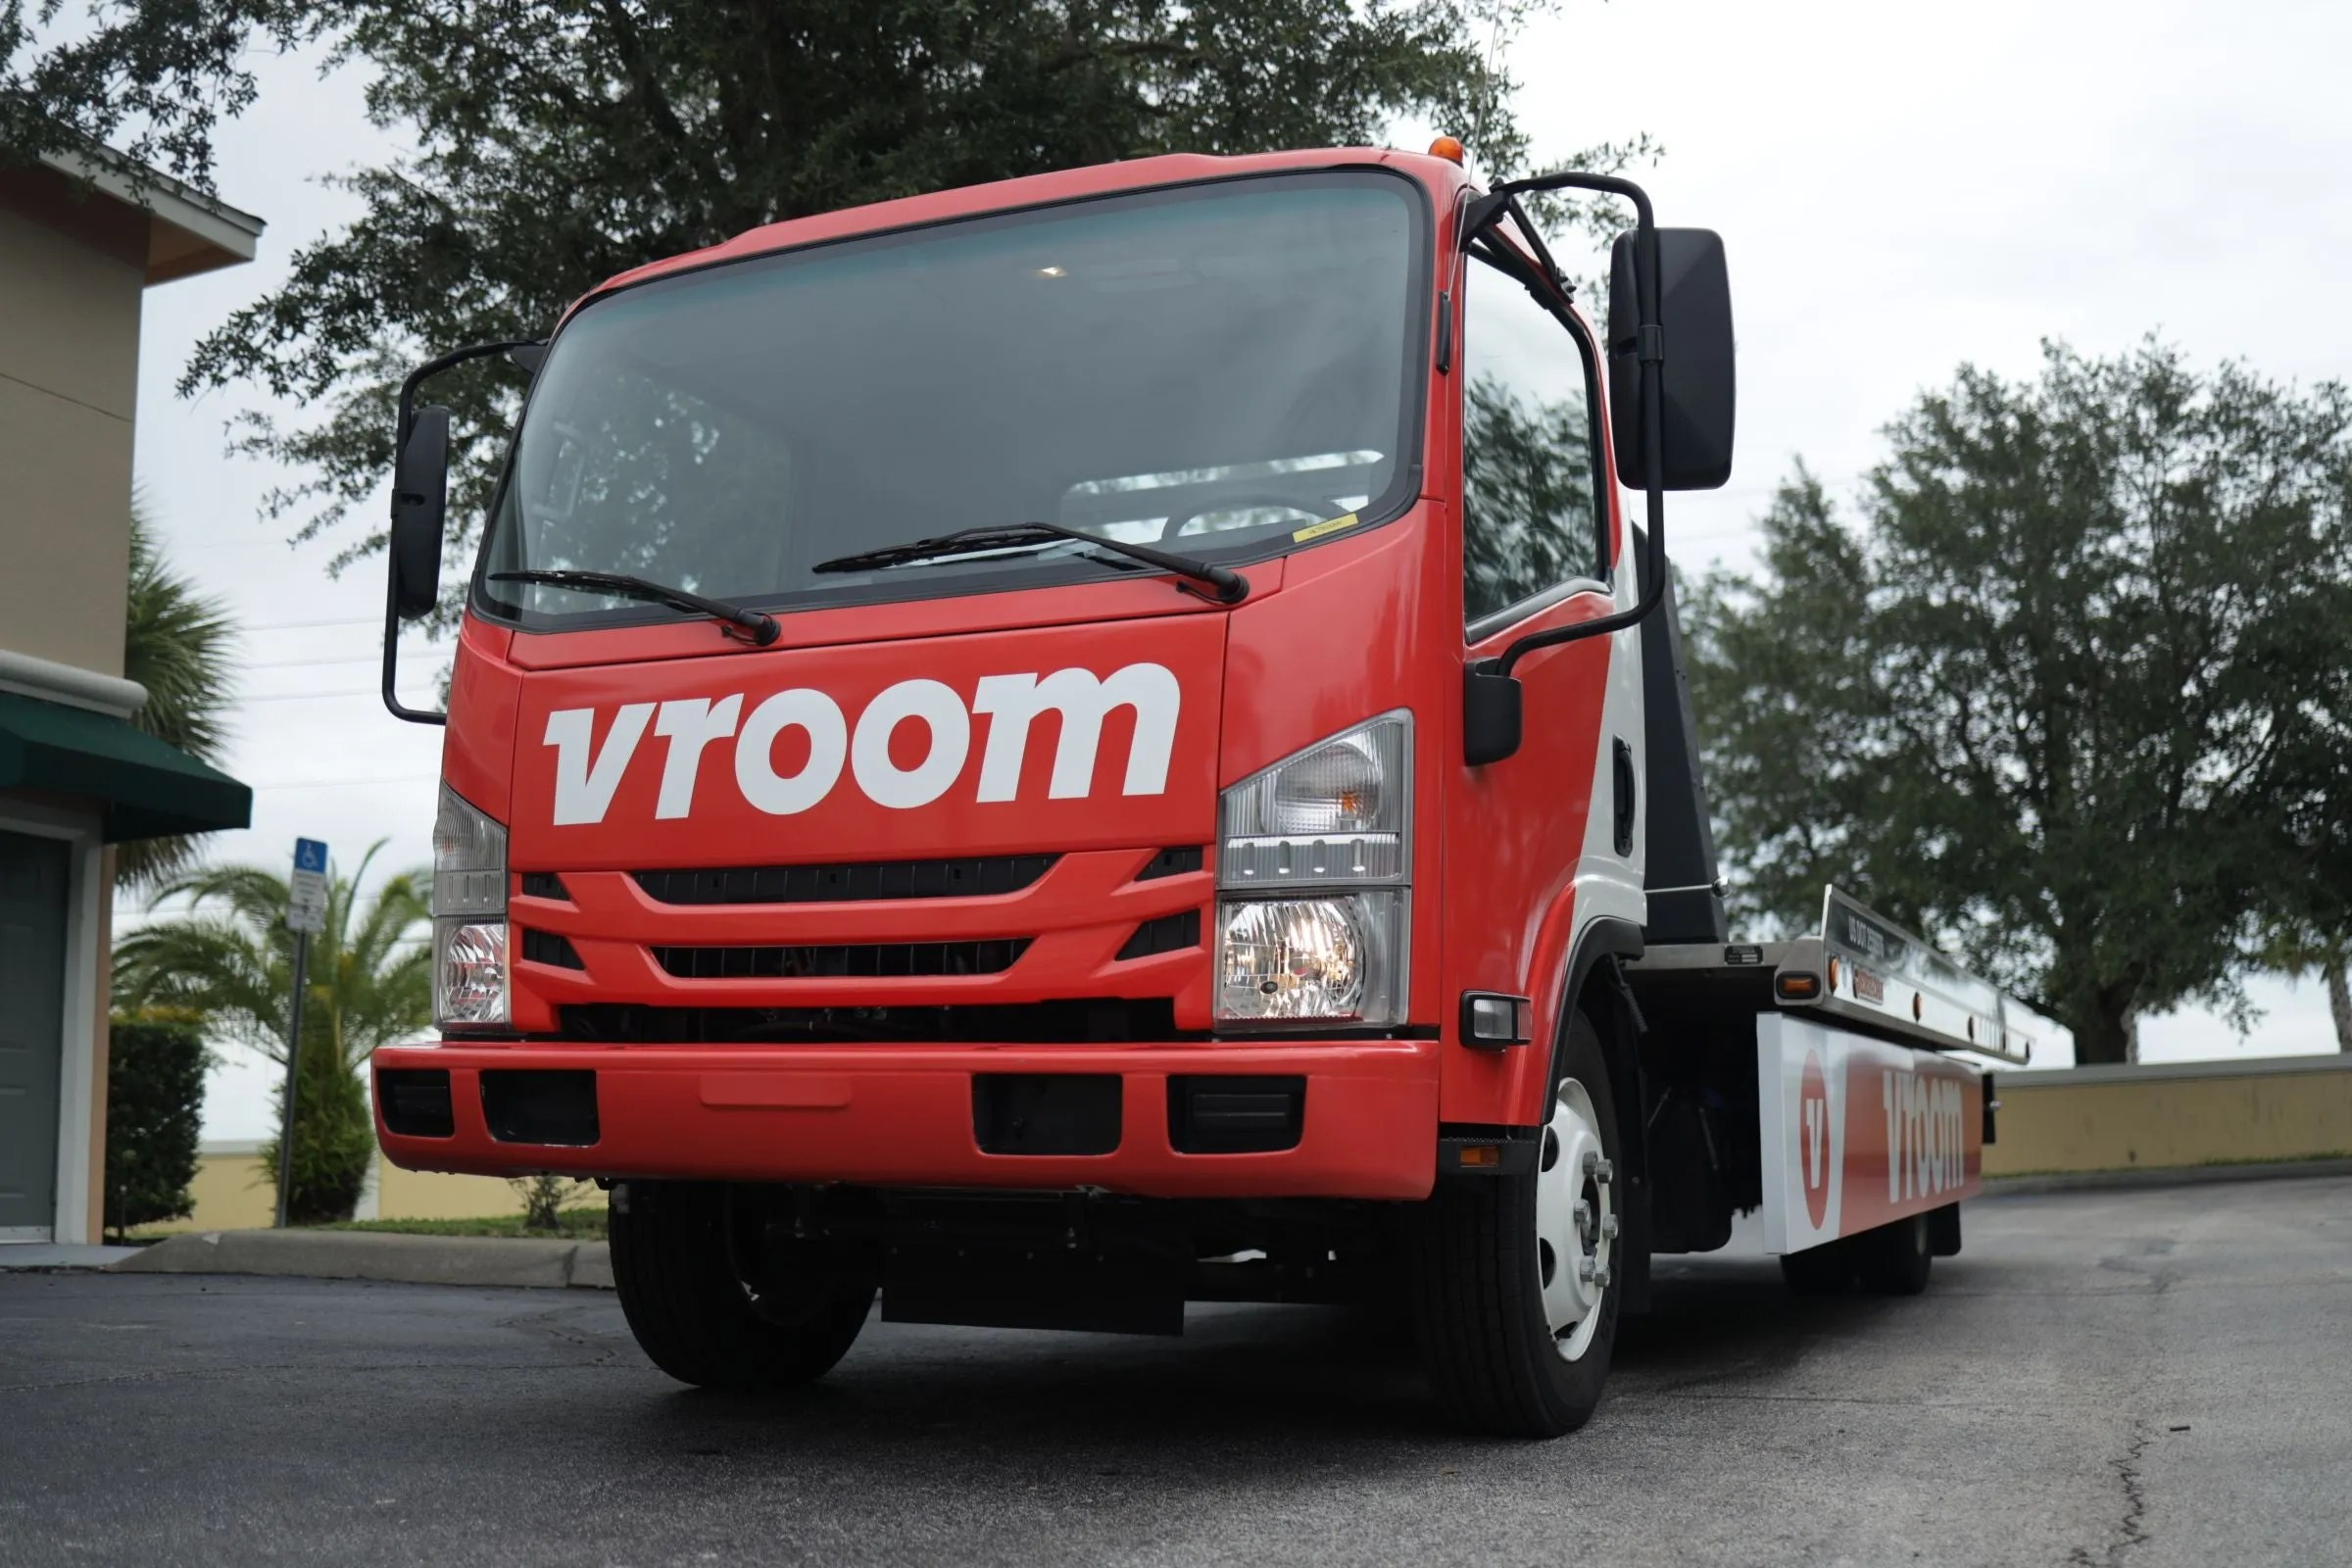 MotleyFool TMOT 3eebff4d vroom truck.jpeg Watch all the commercials for Super Bowl 2021 as they are released